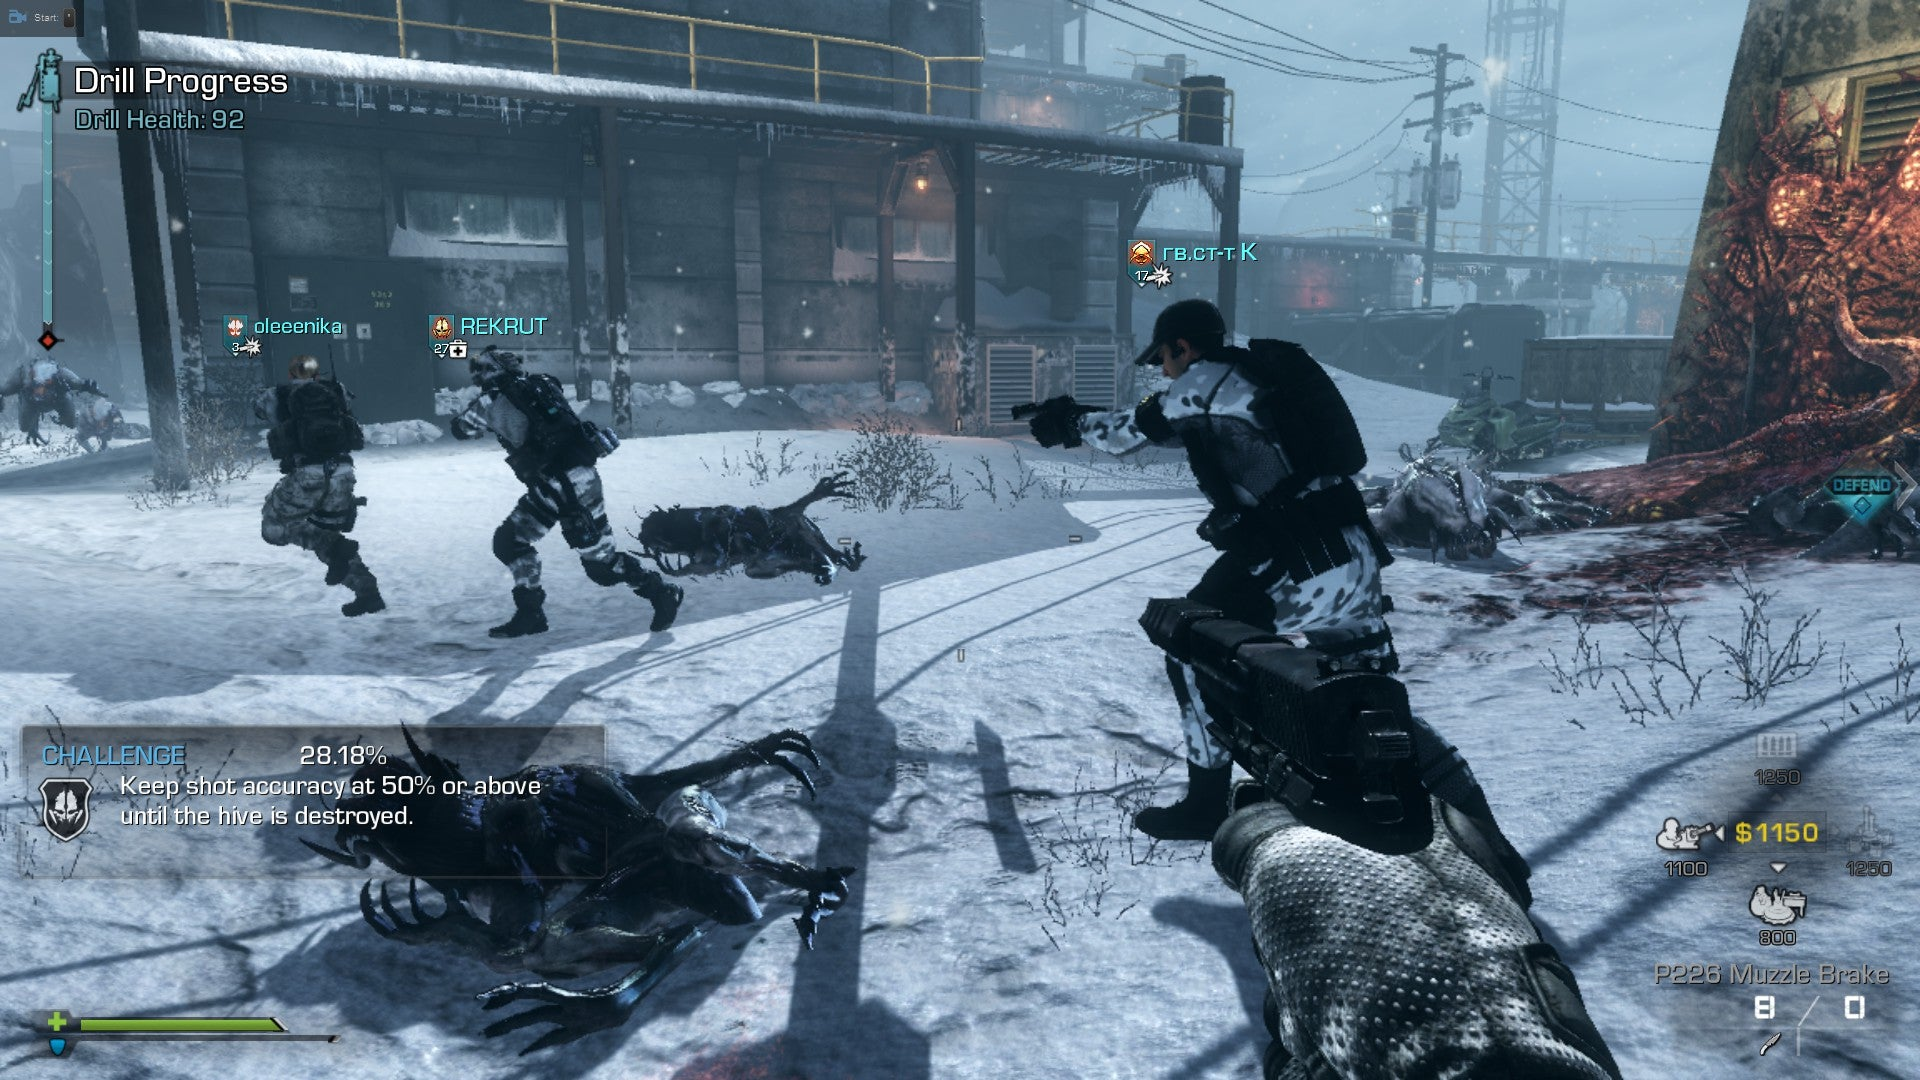 There's A Great Game Buried Deep Inside Of Call of Duty: Ghosts